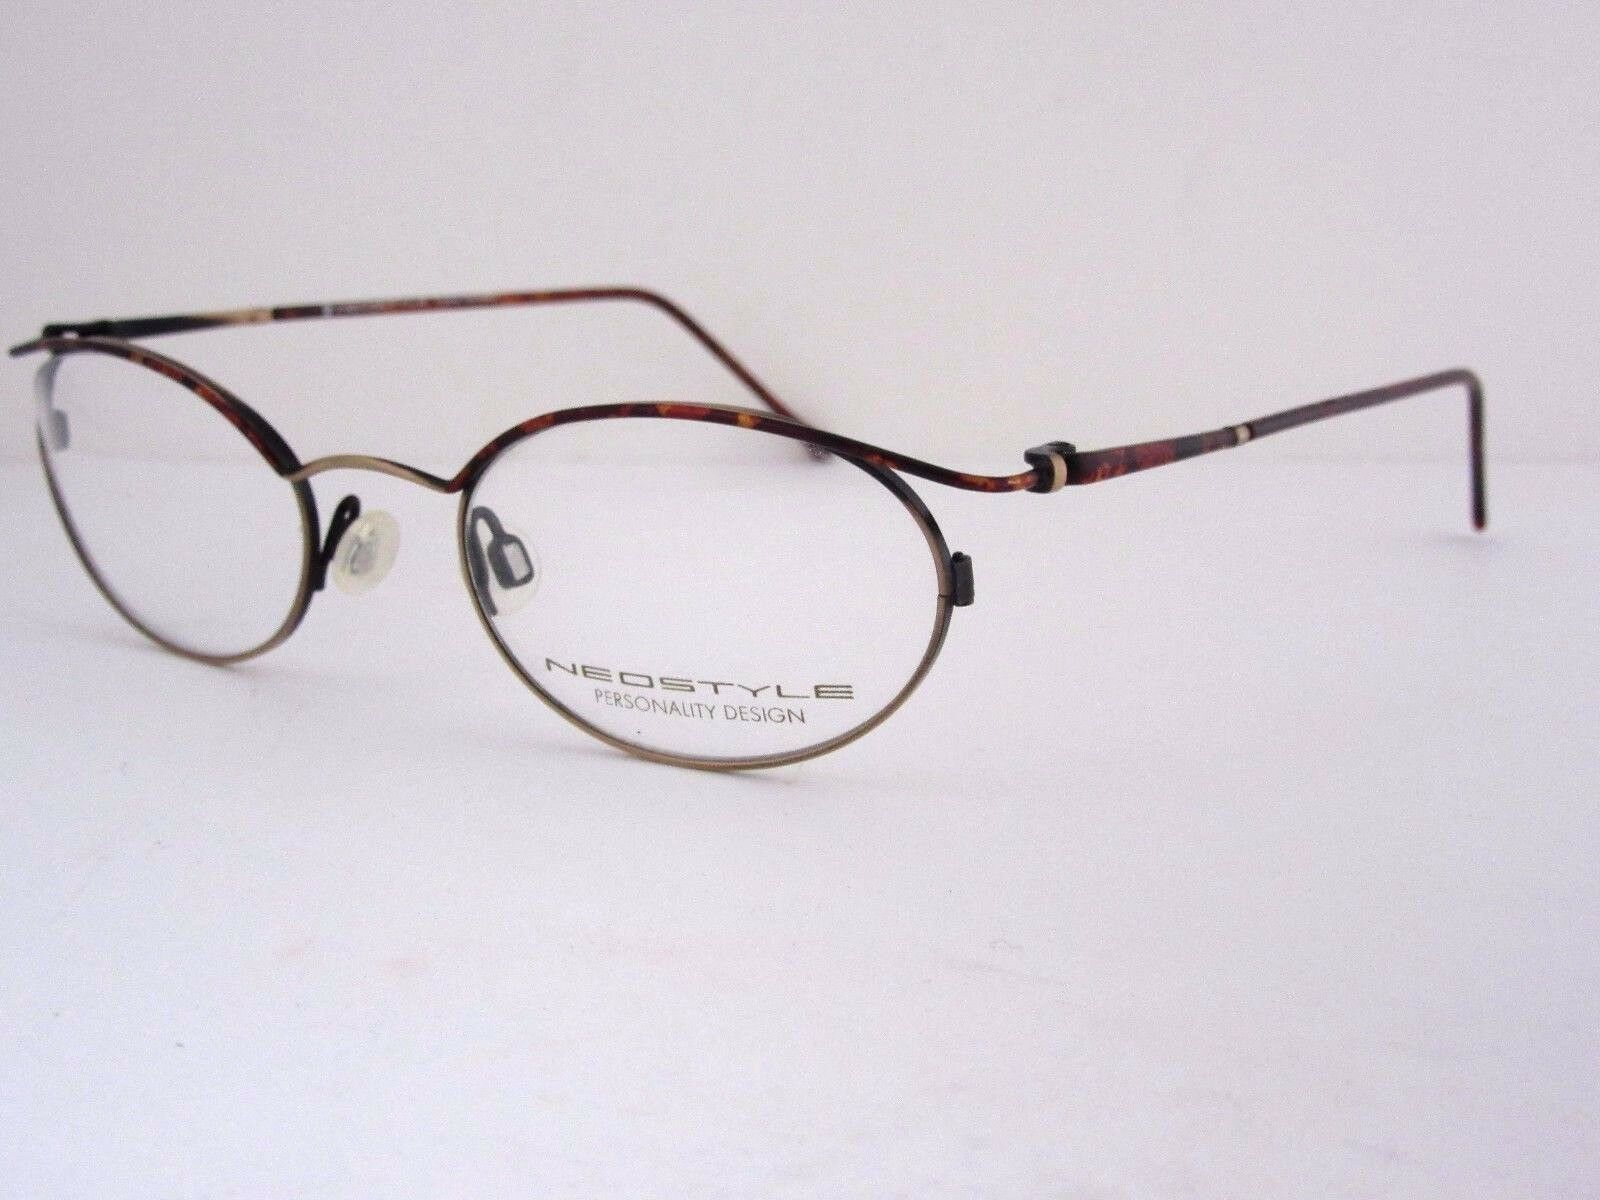 8695f8d1e1 NEOSTYLE College 155 378 Eyeglasses Frame Germany NOS for sale ...